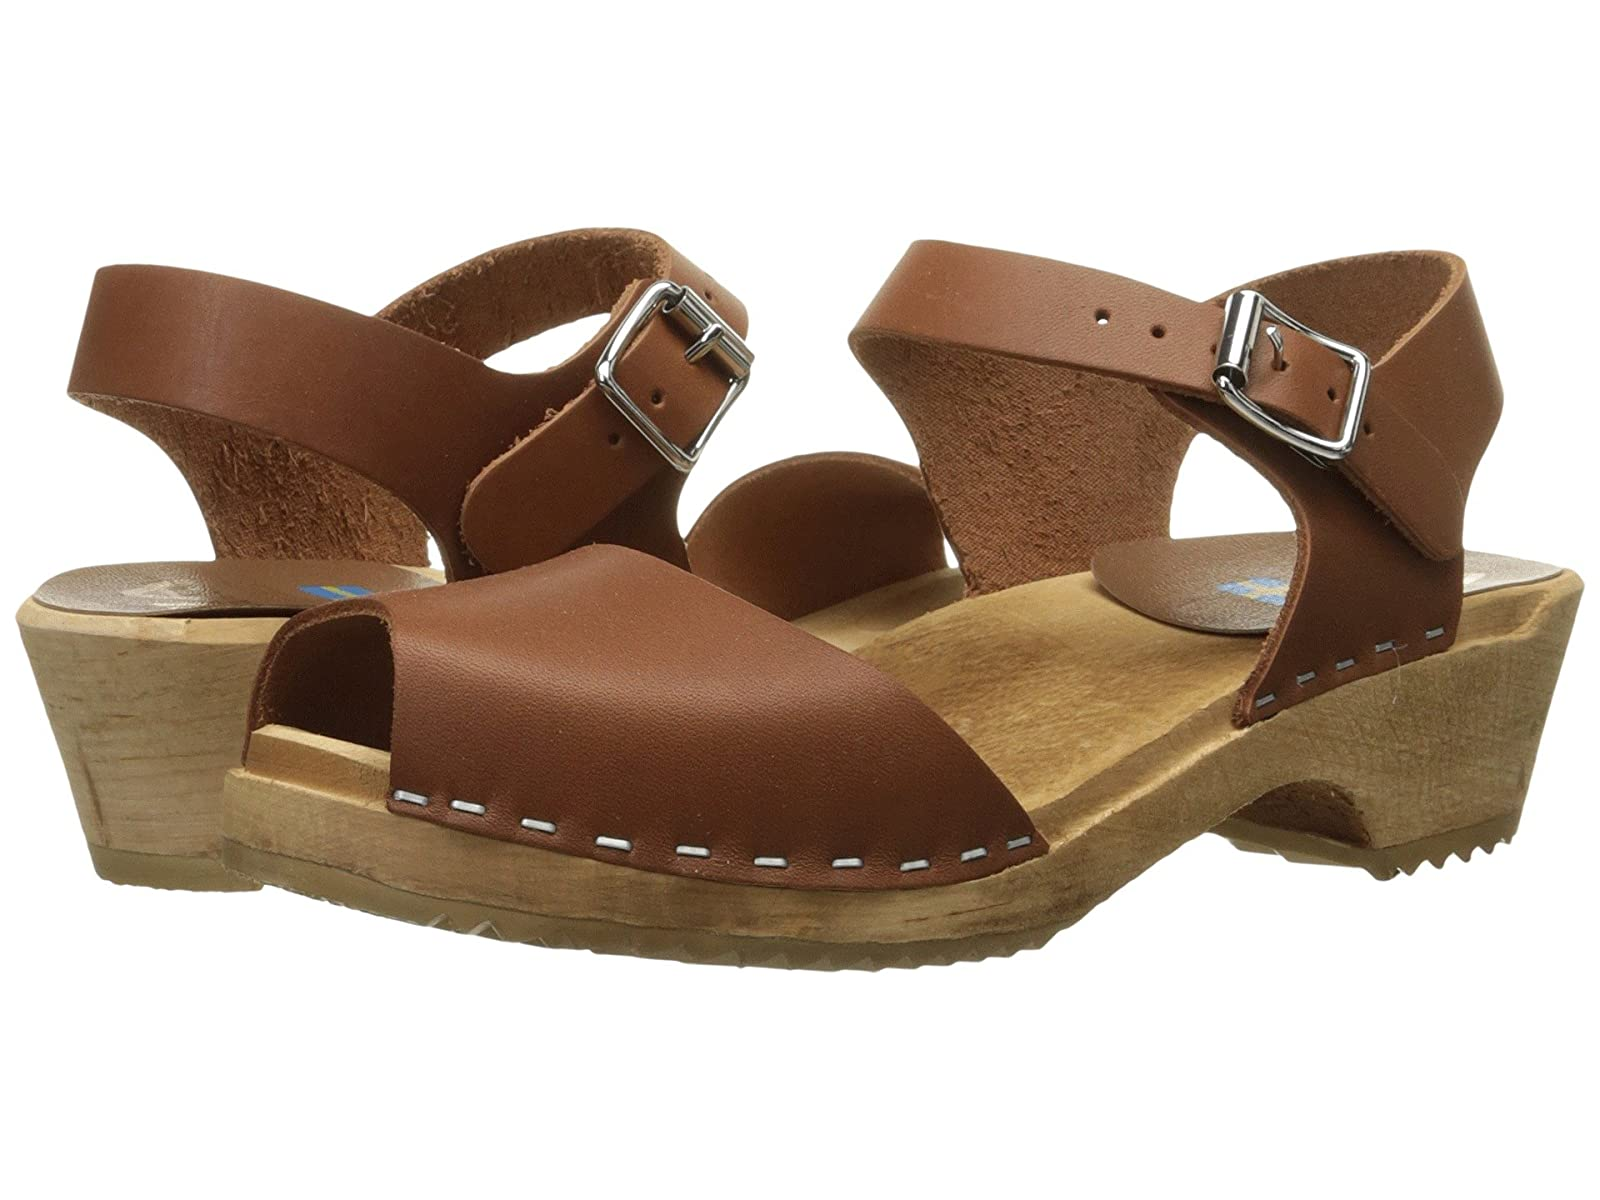 MIA AnjaAtmospheric grades have affordable shoes